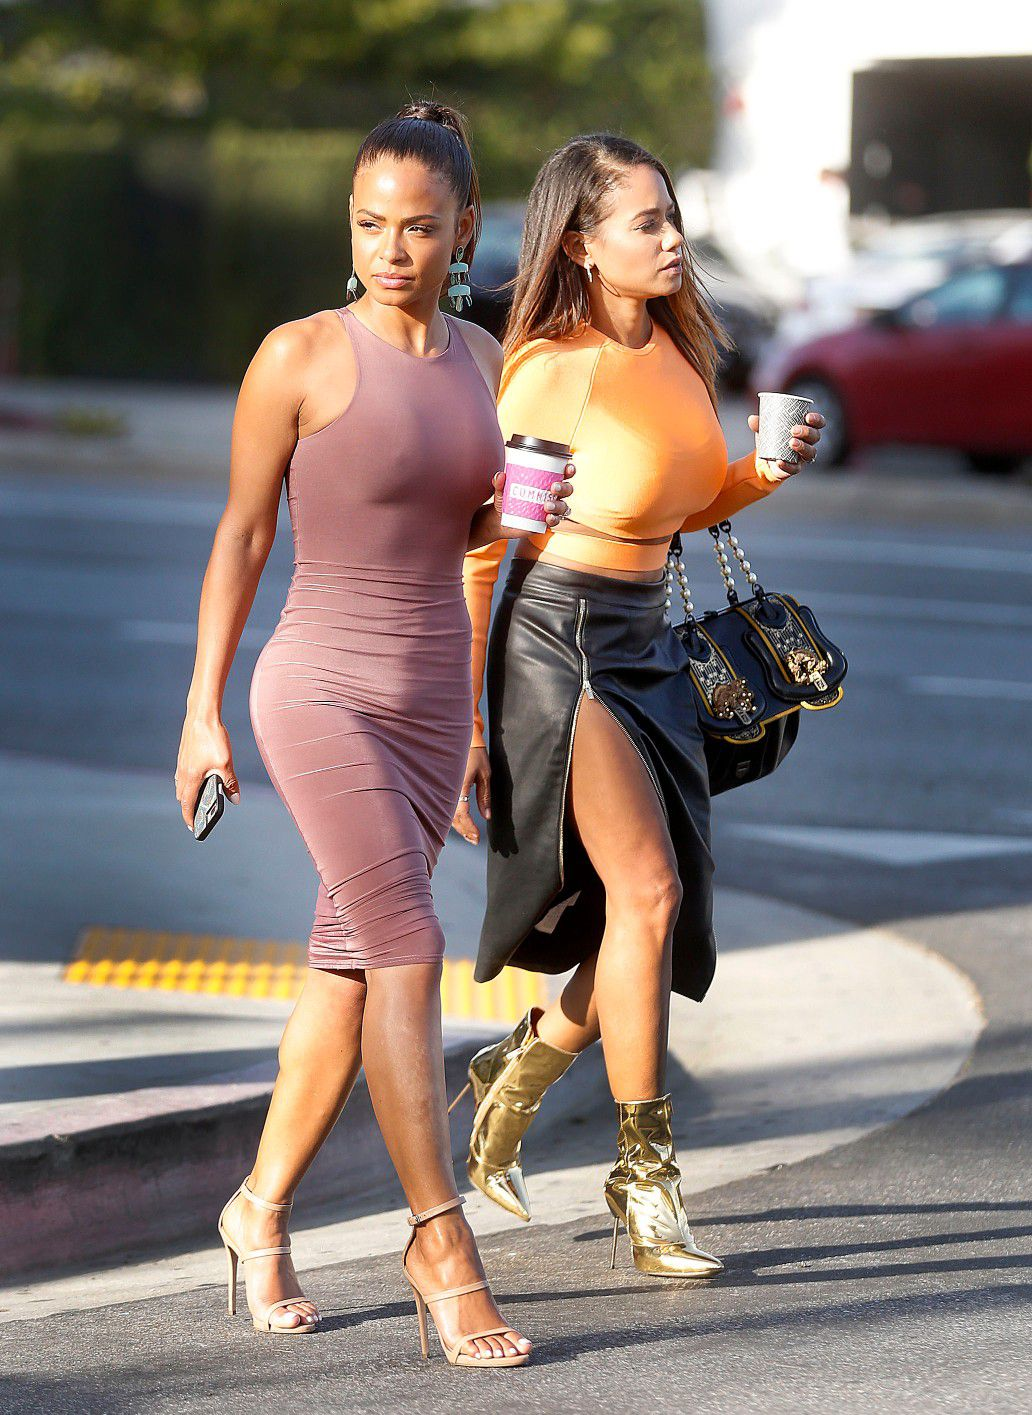 christina-milian-pokies-in-tight-dress-while-out-in-west-hollywood-6555